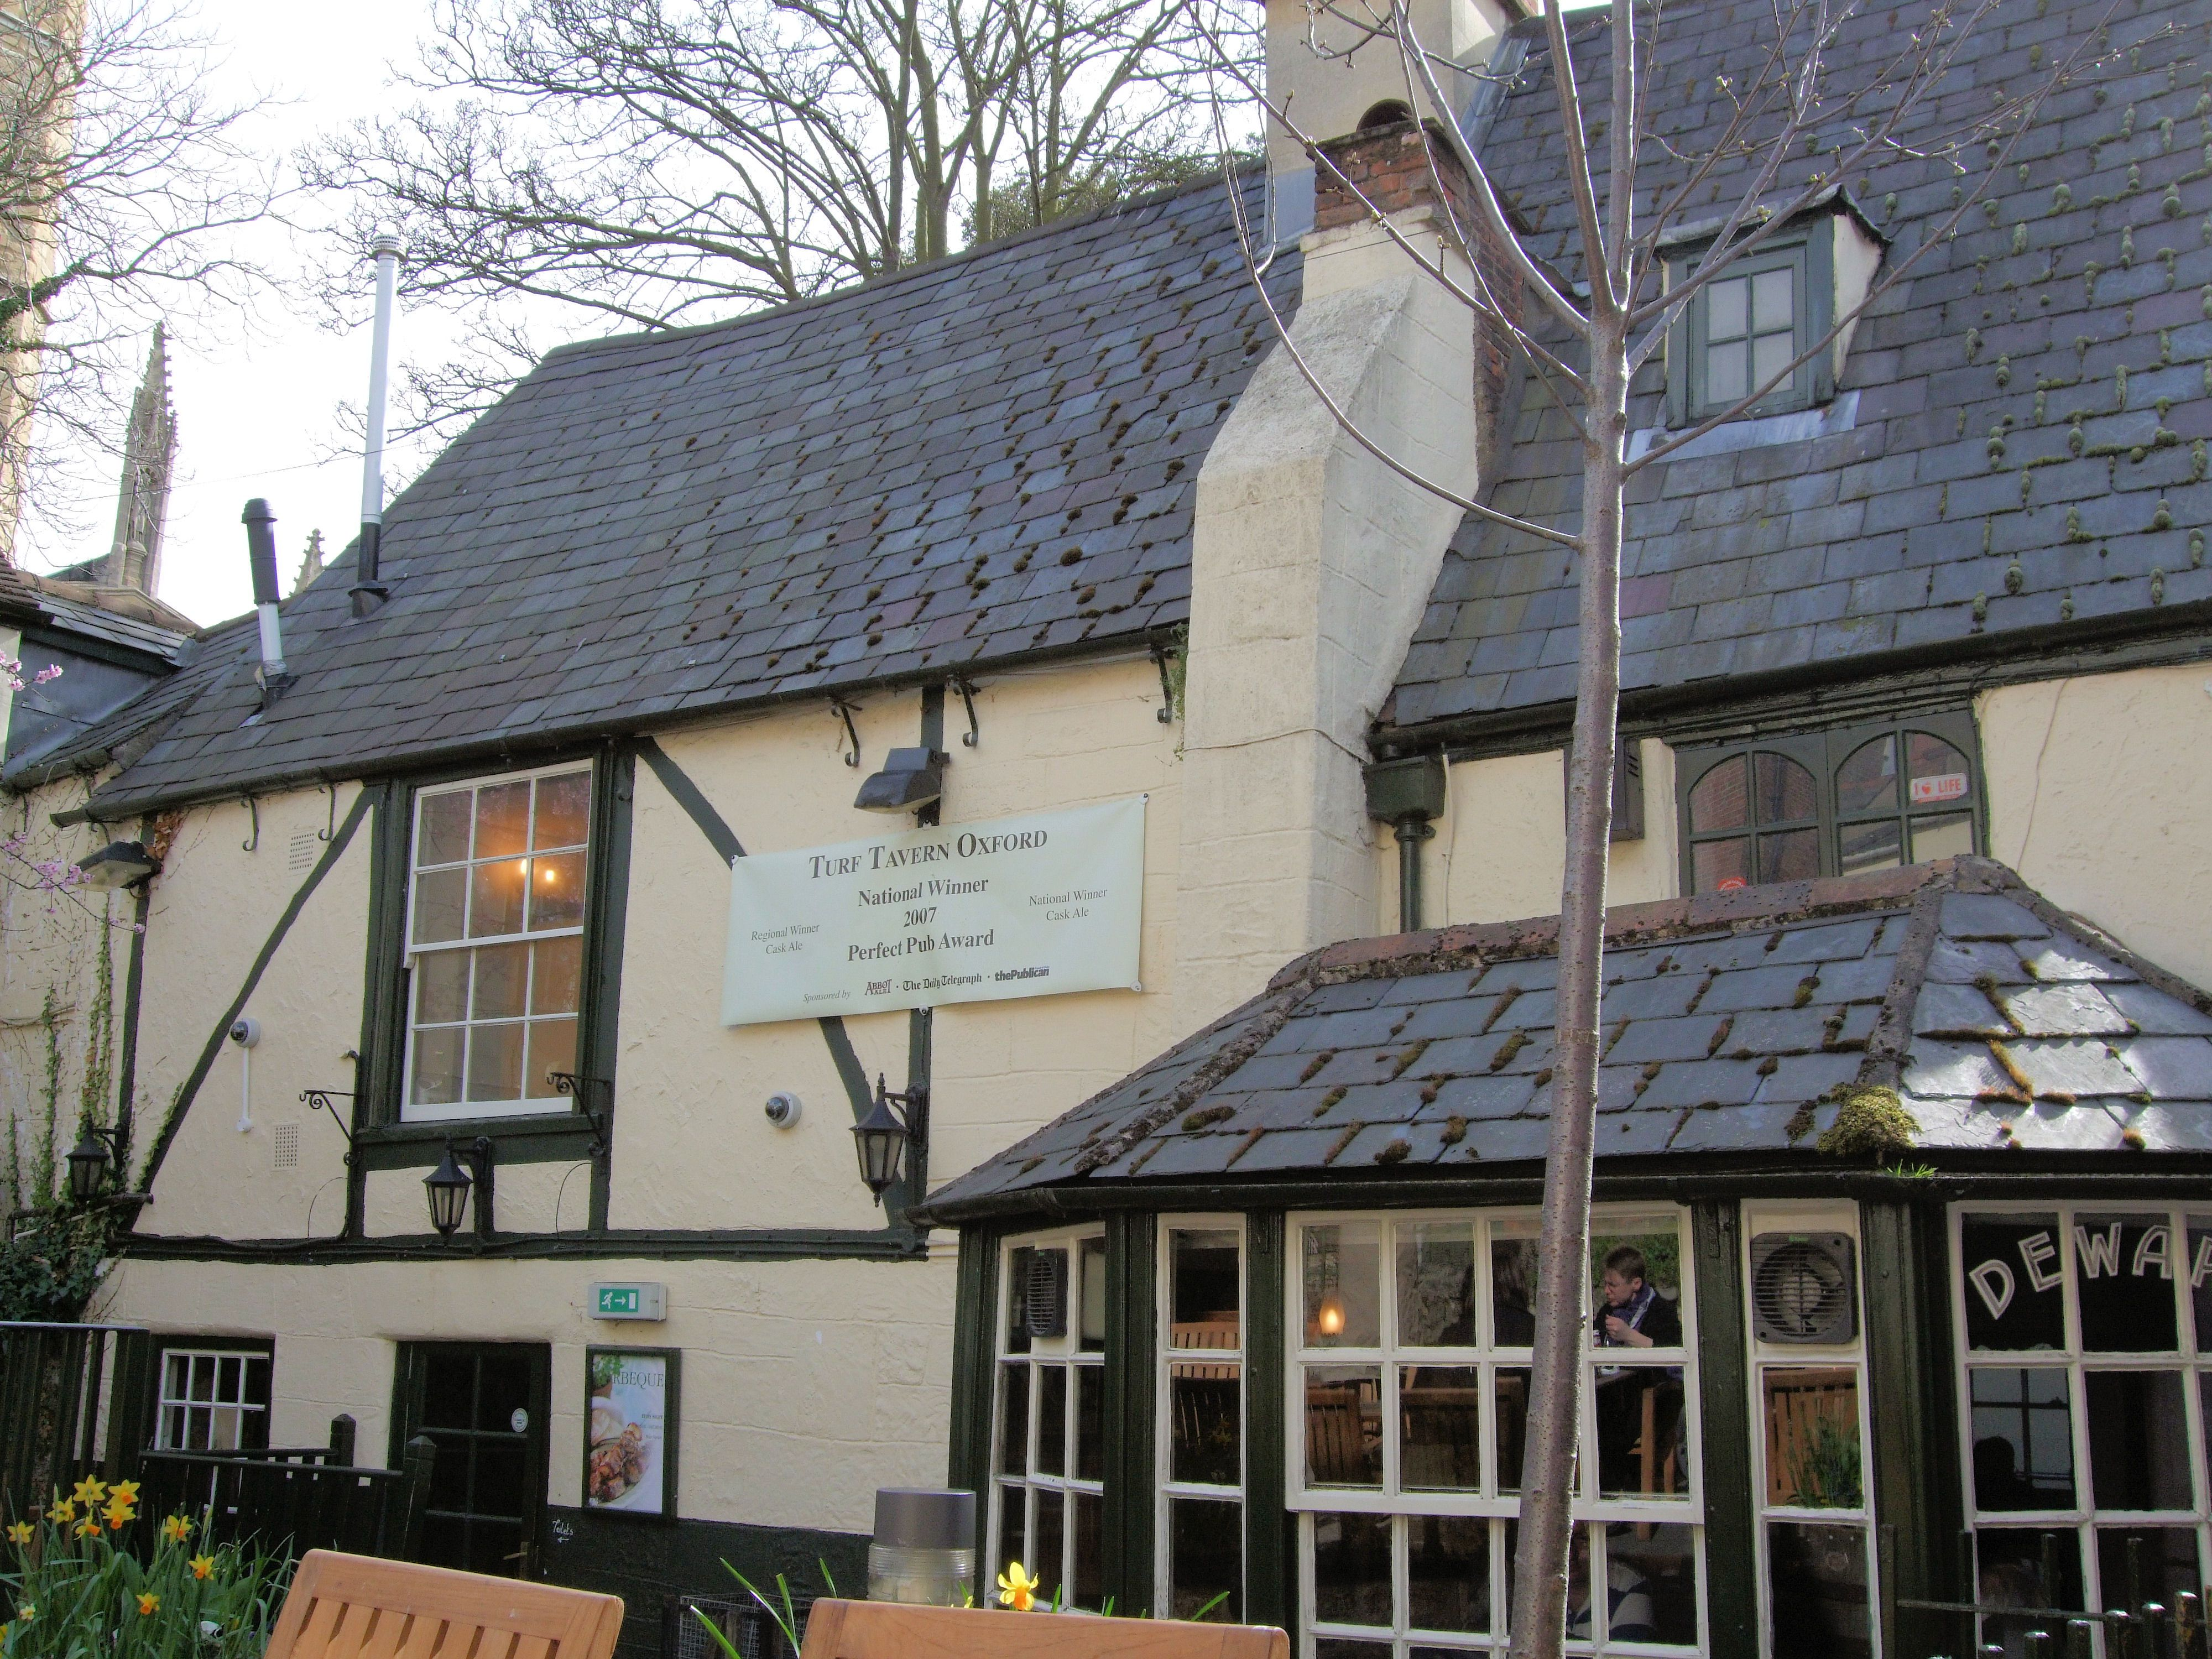 Re mended Pubs for Christmas Dinner